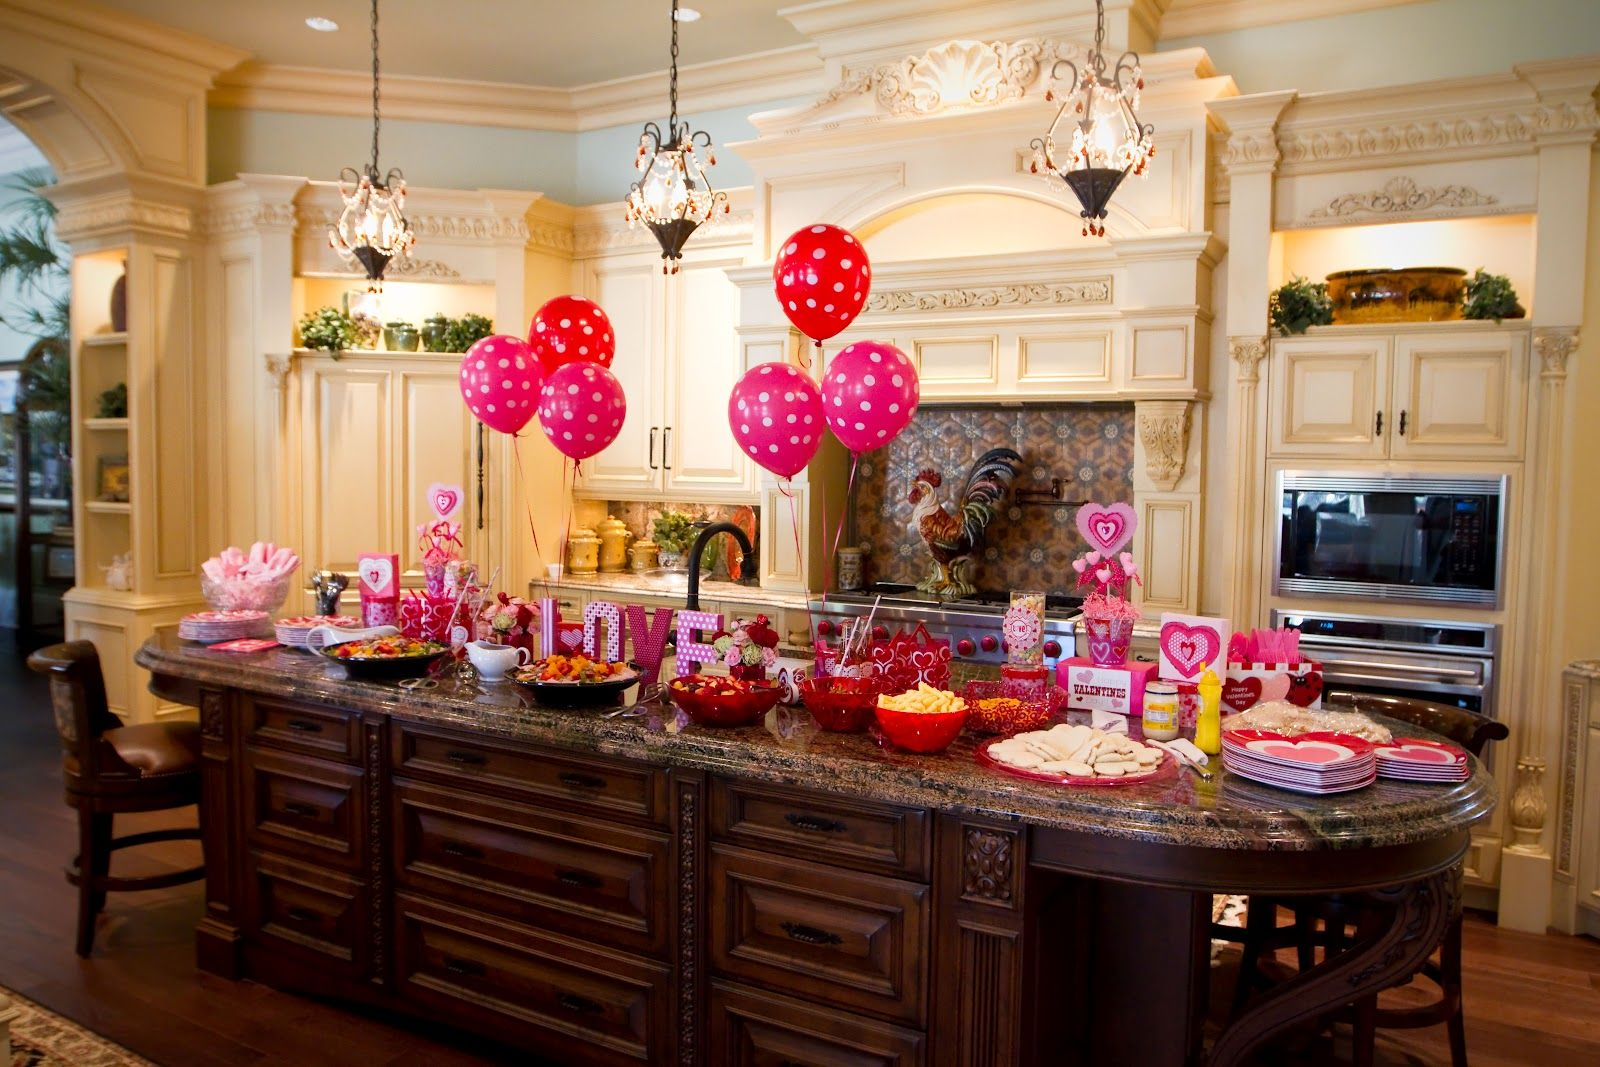 Party Food Display On Kitchen Island With Balloons Party